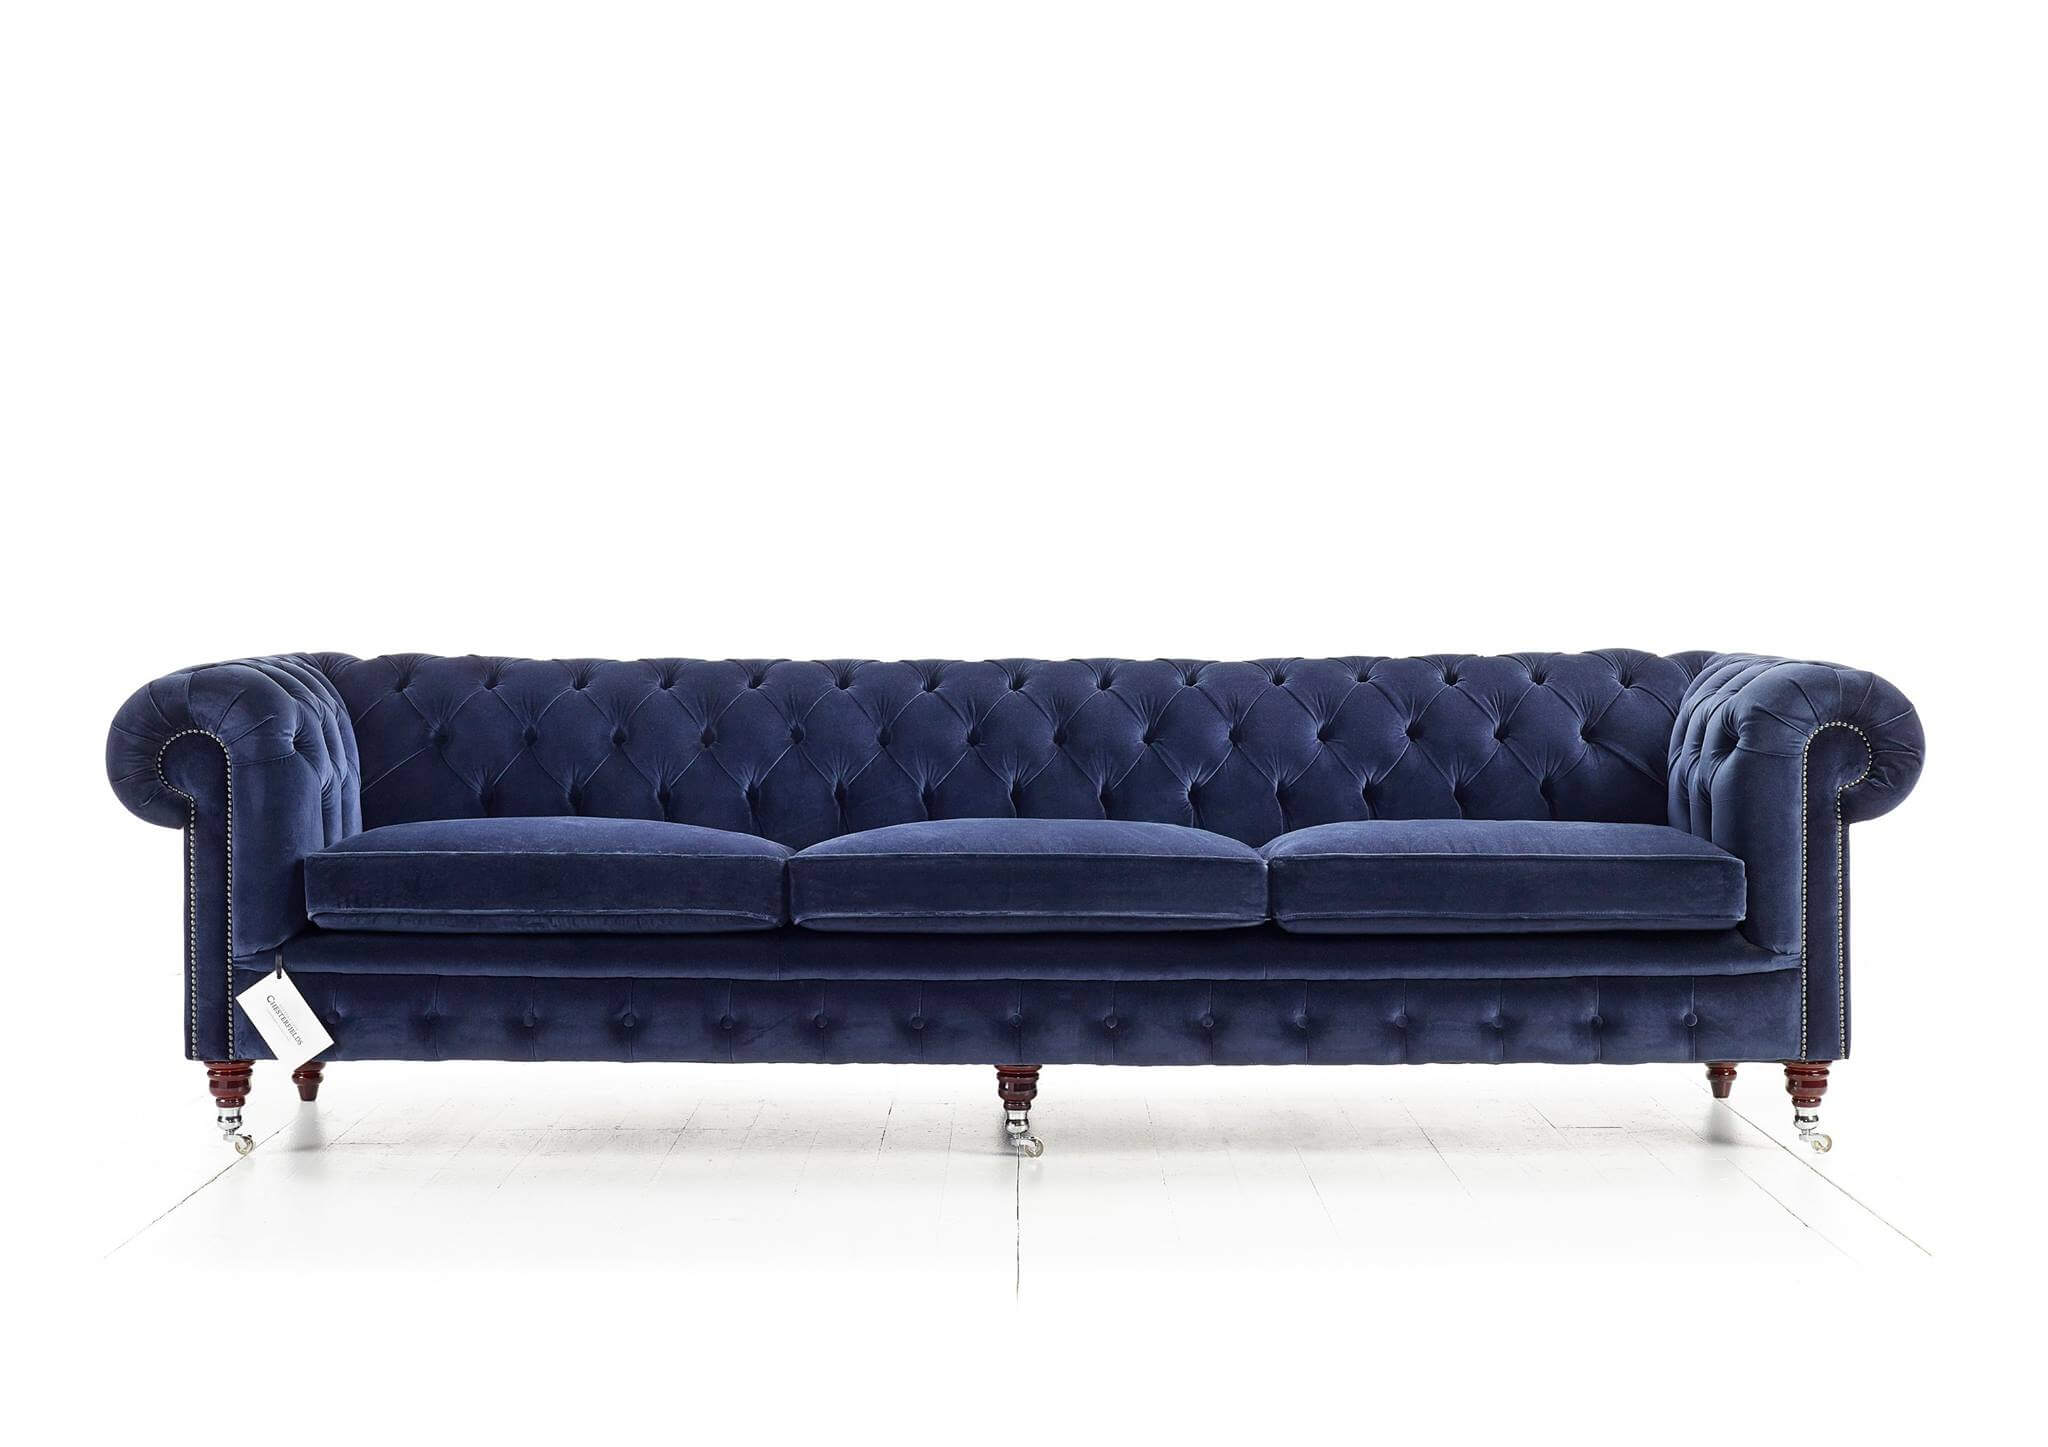 Canapé Chesterfield Belchamp 4 places en velours